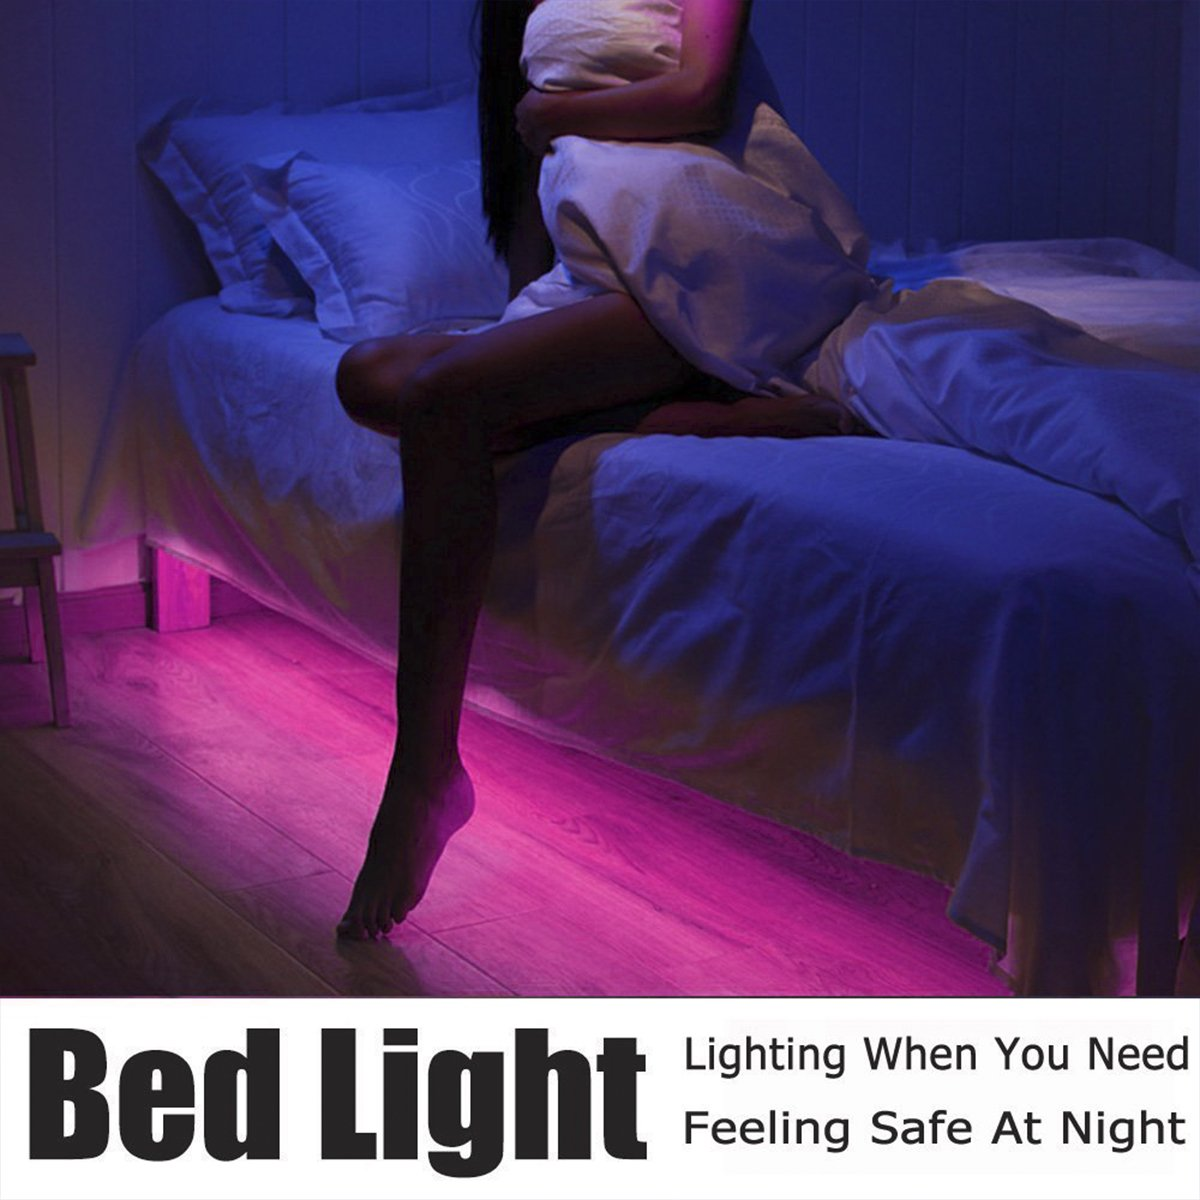 LEHOU Under Bed Light Motion Activated Illumination RGB Color Include Warm Color Automatic Staircase Lighting LED Strip Sensor Night Light Bathroom,Wardrobe,Kitchen - 1.5m/4.9ft x 2 by LEHOU (Image #4)